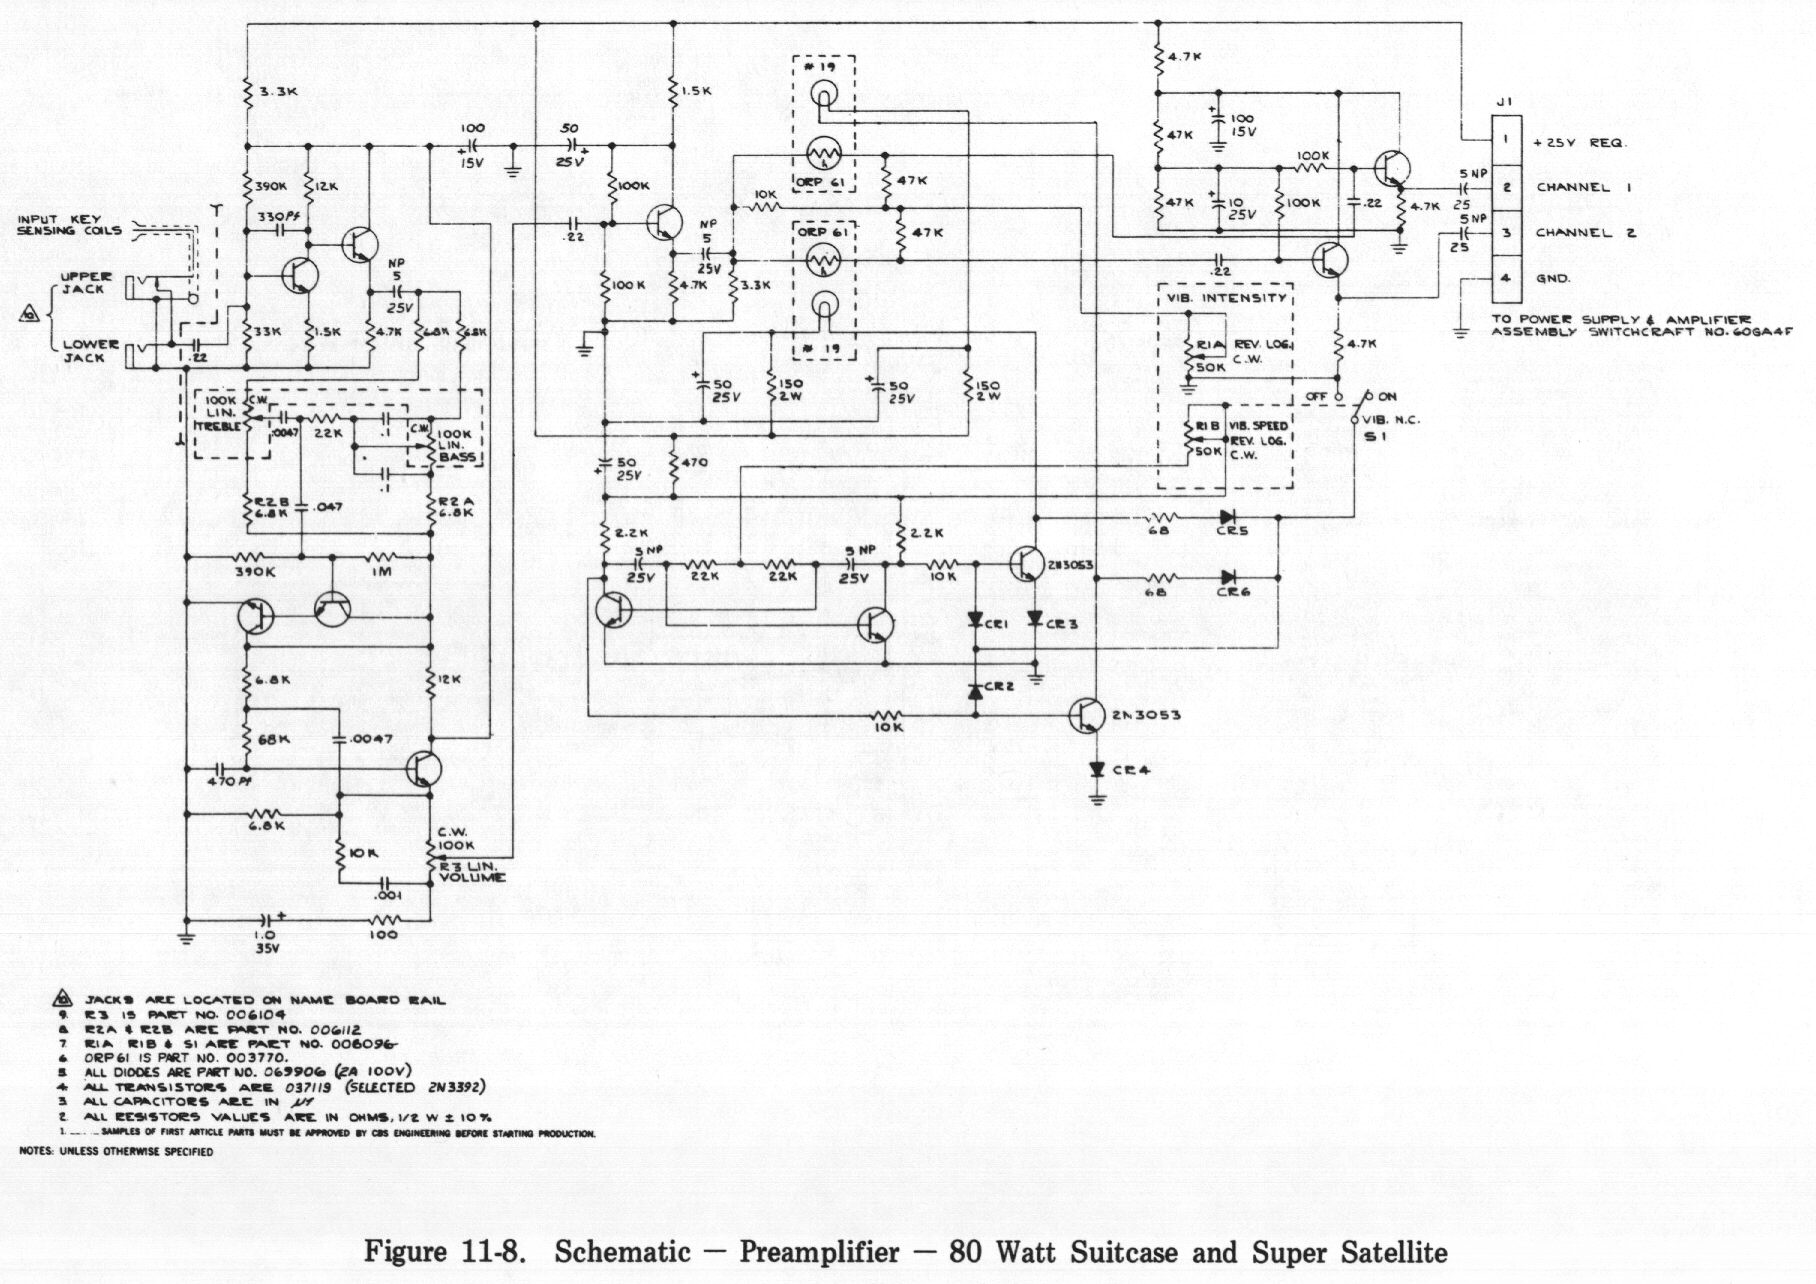 B Amp S Wiring Diagram Database Library Guitar Amplifier Fender Manuals Parts Schematics Bose